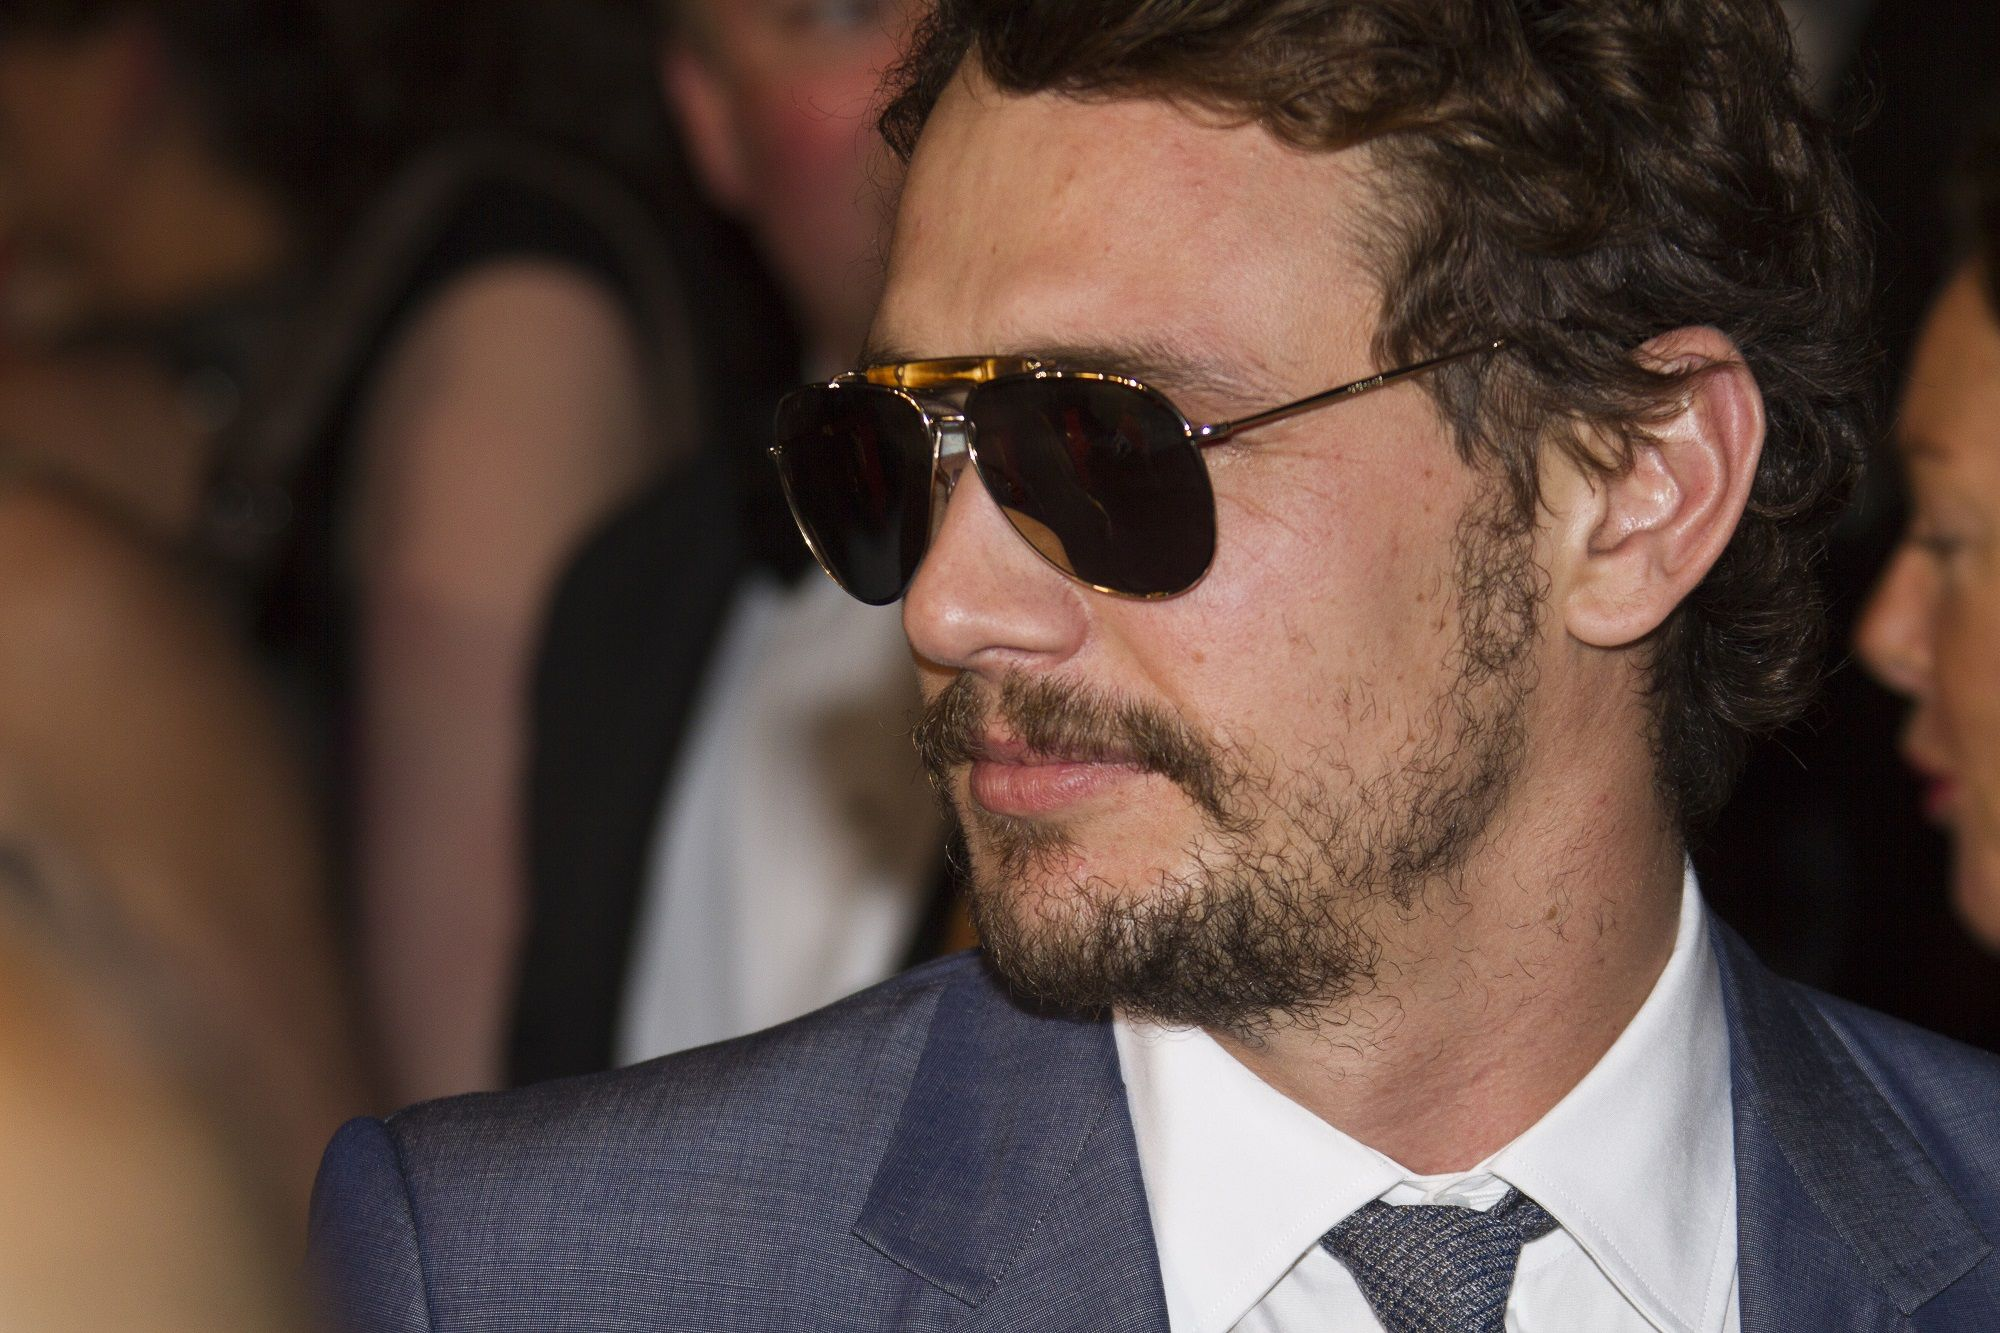 10 Rich Celebrities Who Have Used Kickstarter To Fund Their Projects